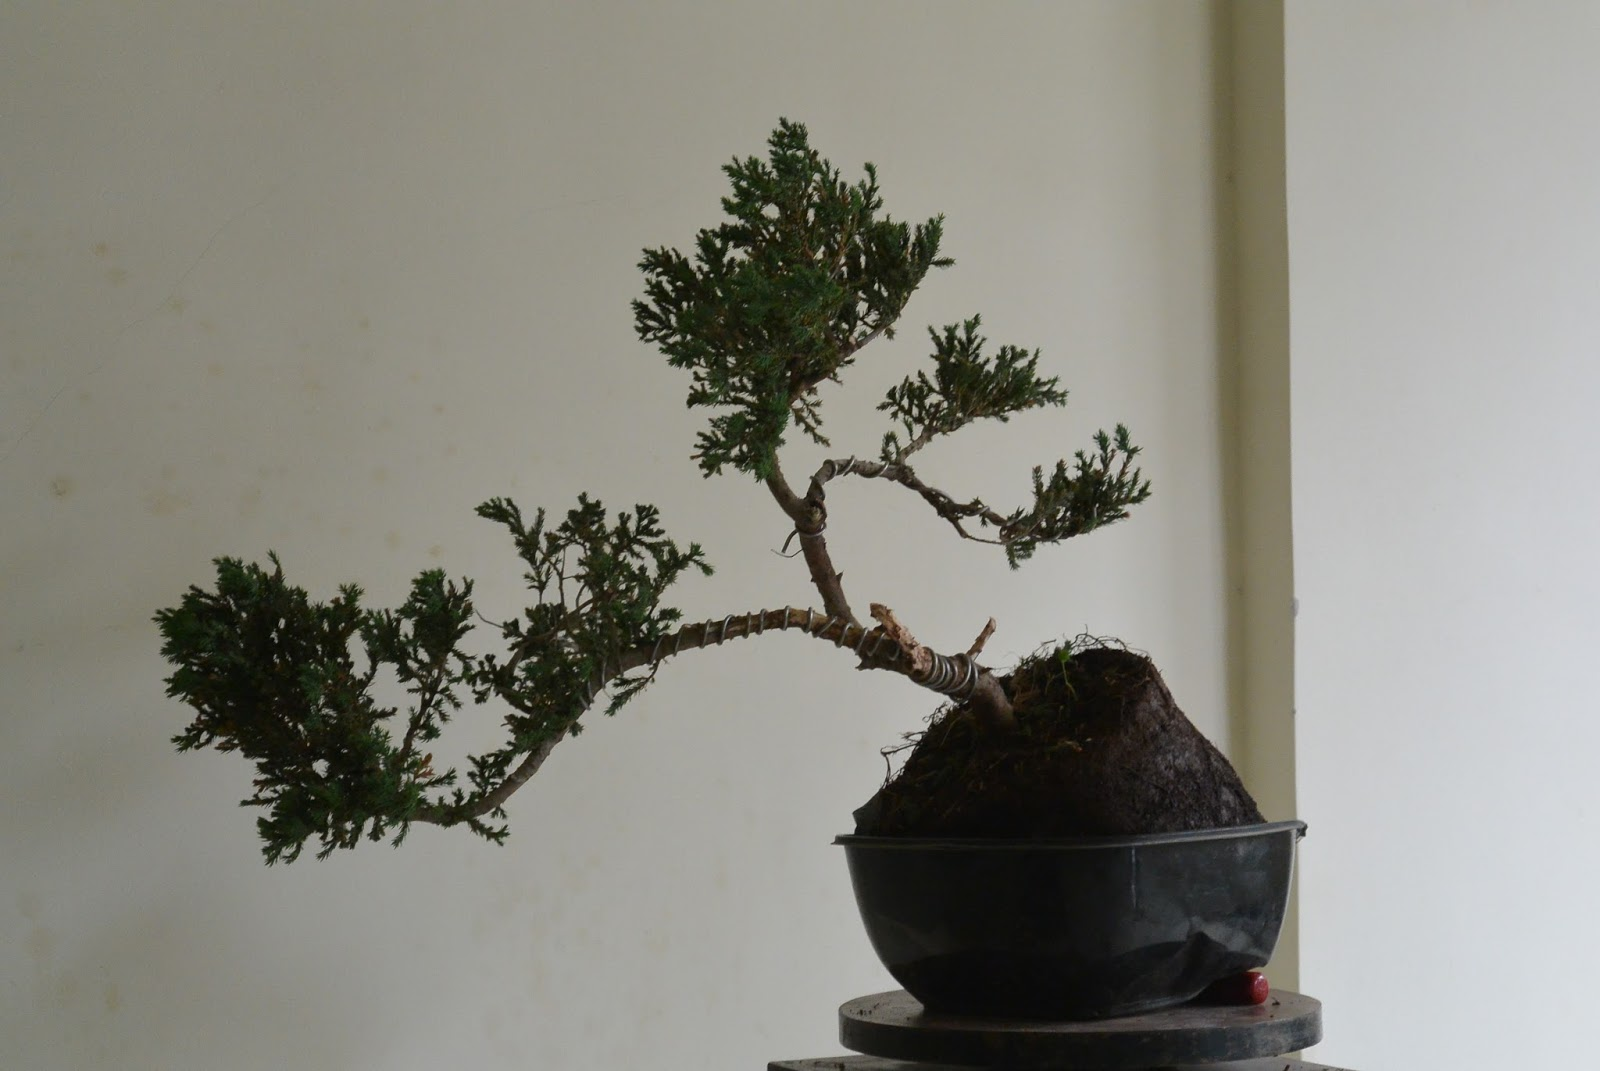 Kapilaascreations Bonsai Wiring Branches Is Started After Clearing The Main Trunk